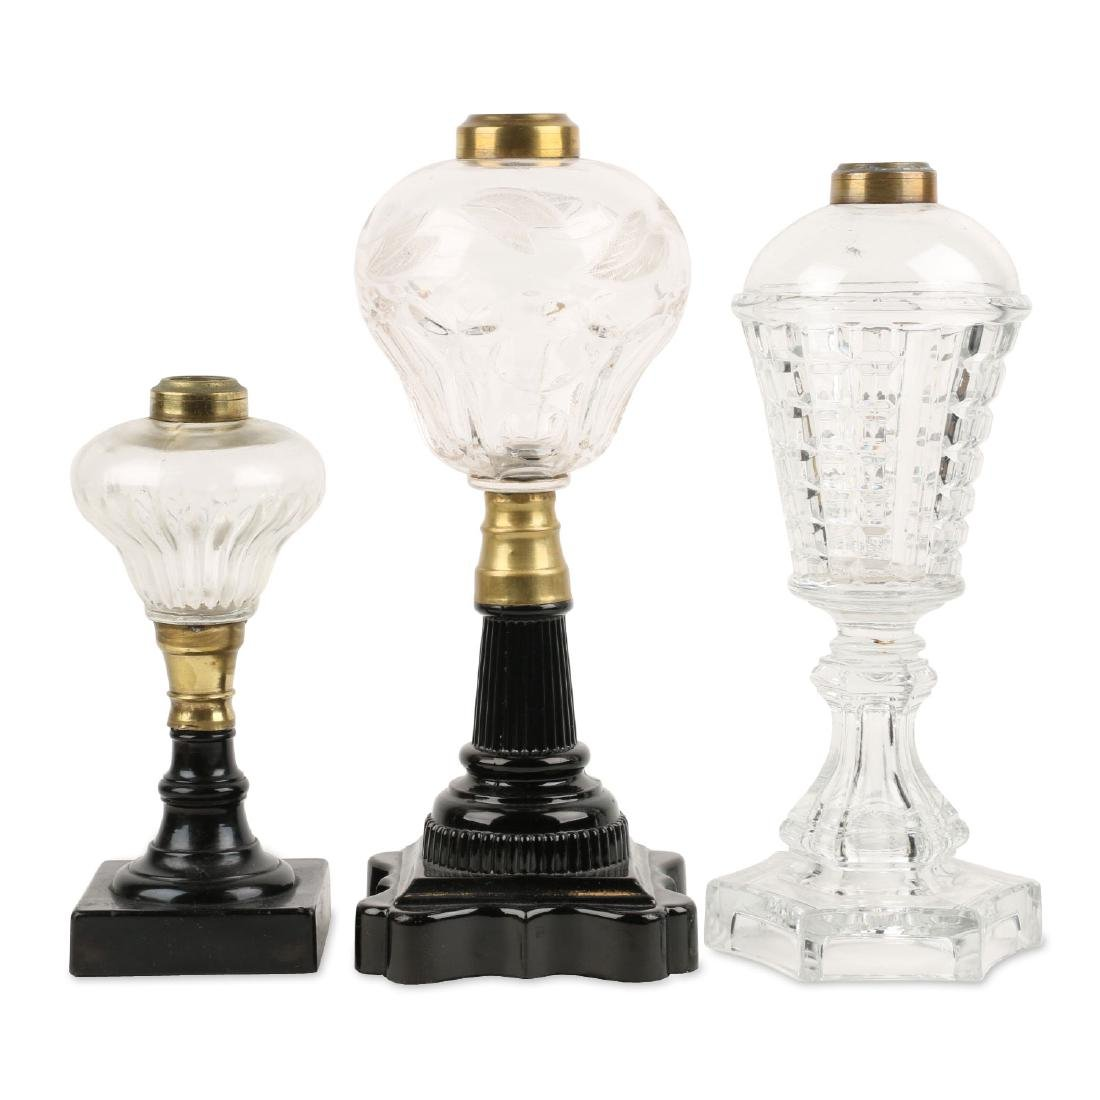 Early Whale Oil Lamps